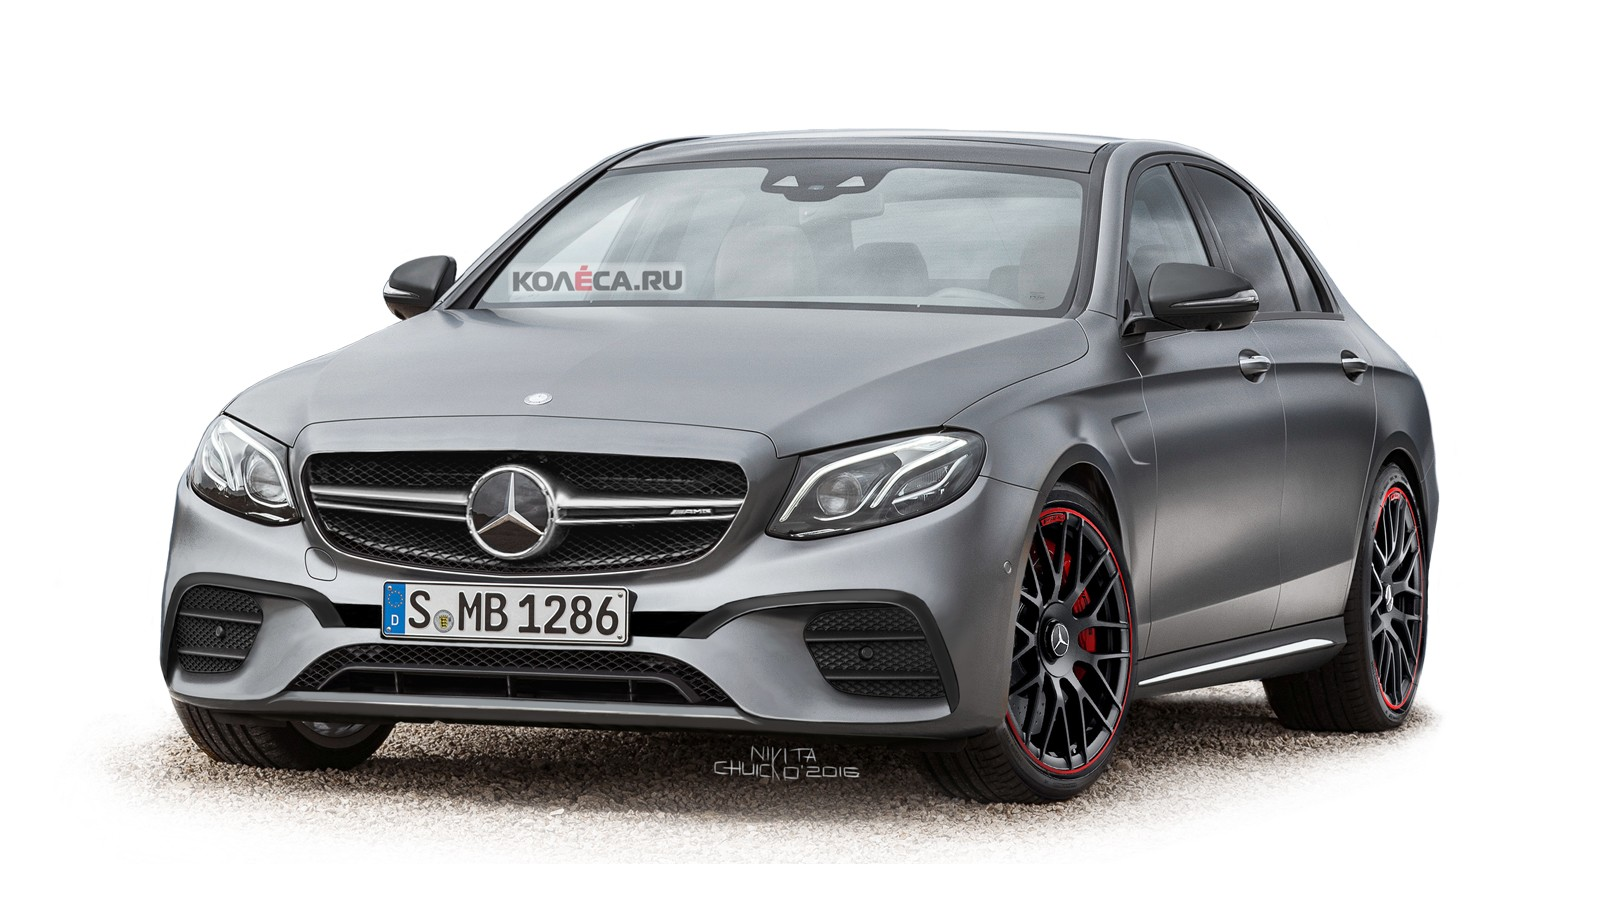 Mercedes-AMG E63 front